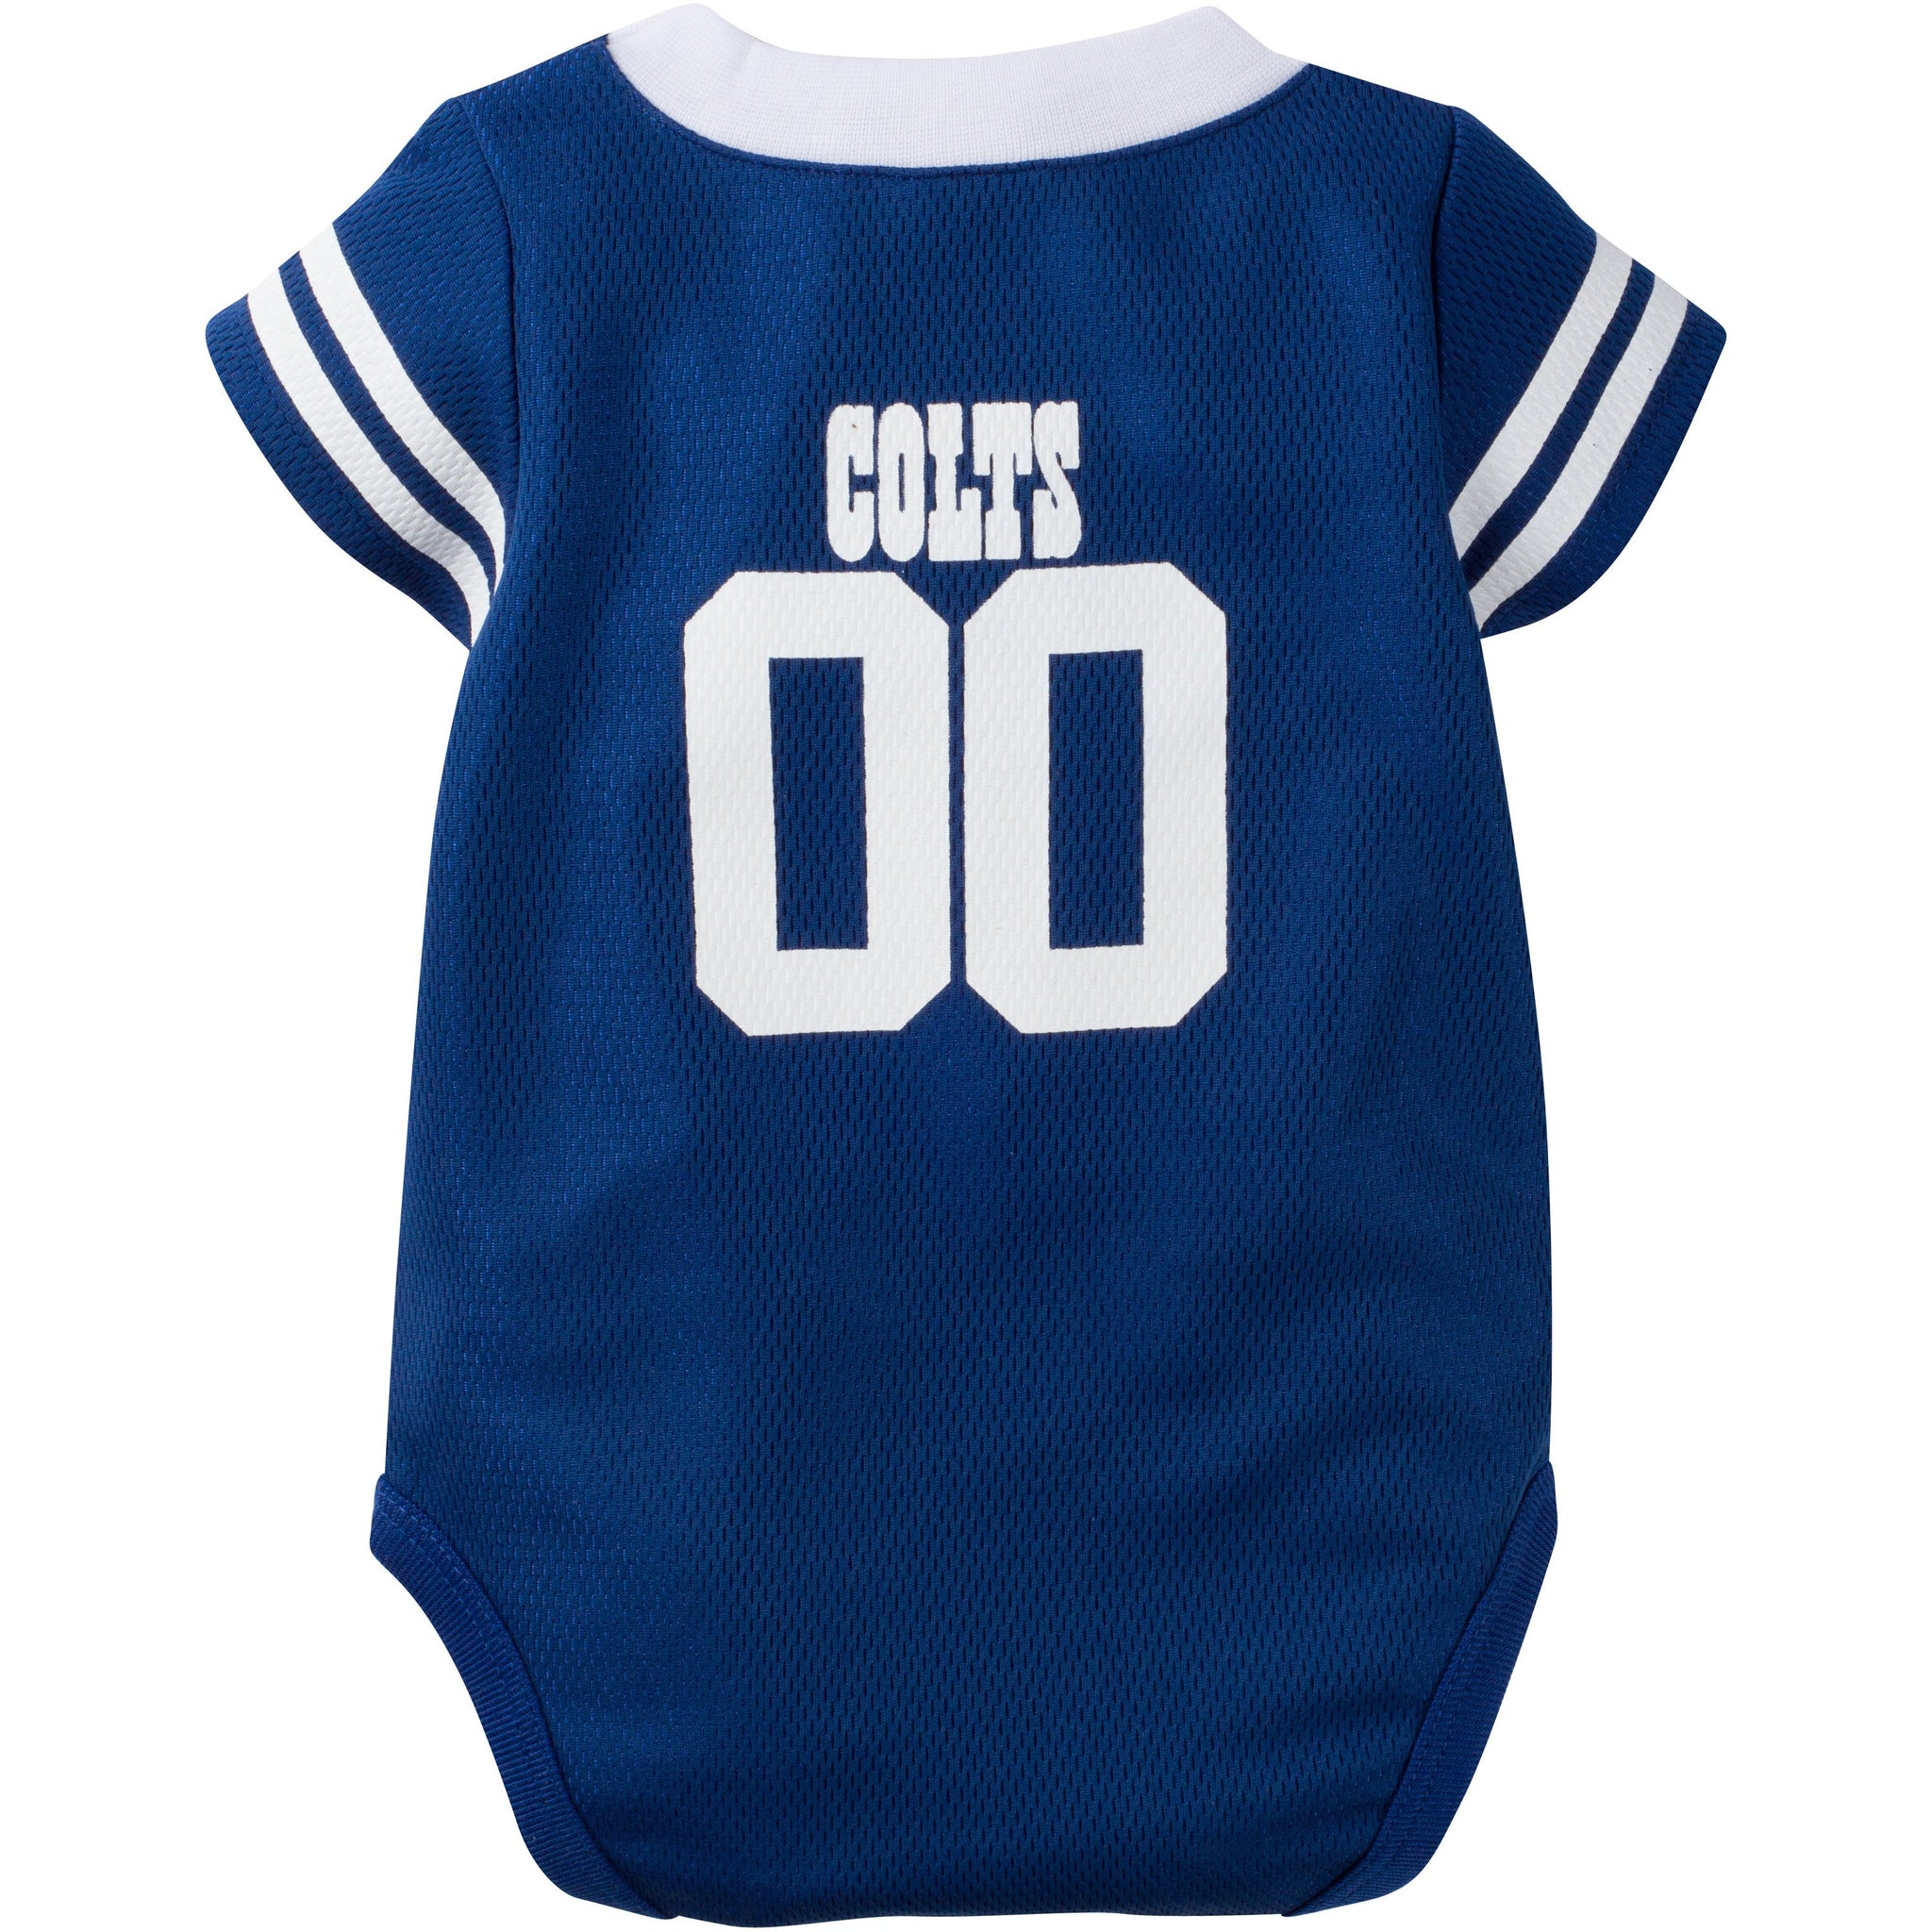 Indianapolis Colts Baby 1 Pack Bodysuit